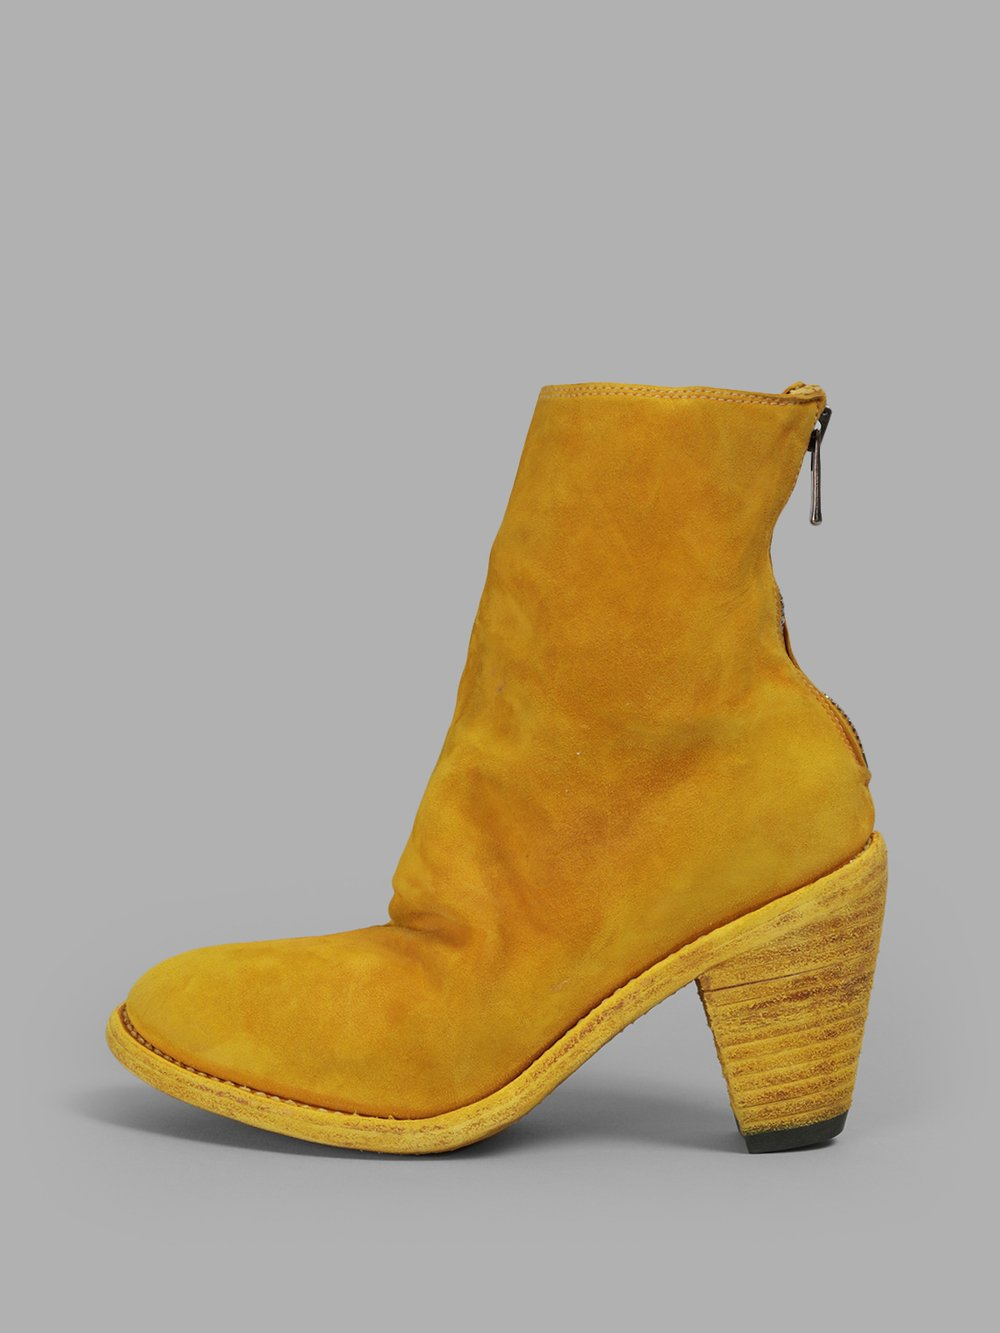 GUIDI WOMEN'S YELLOW BOOTS